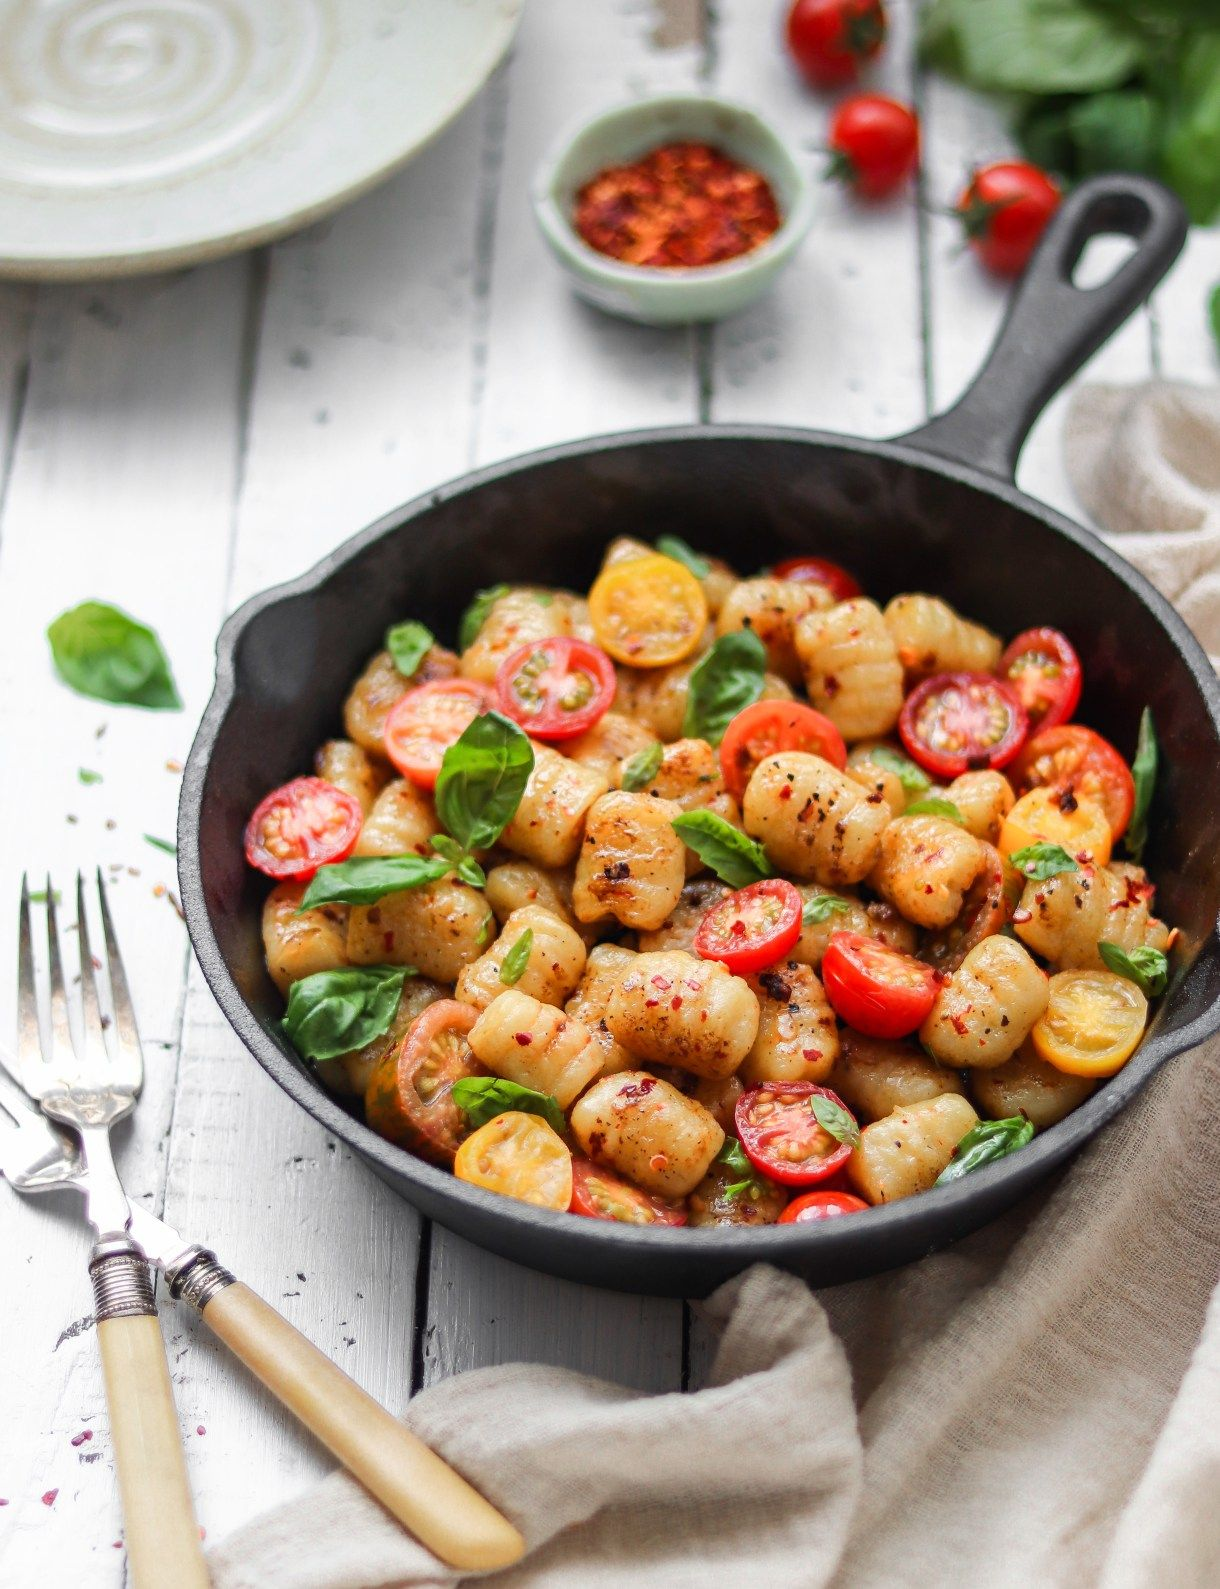 Pan Fried Homemade Gnocchi With Tomato And Basil - Nm Meiyee